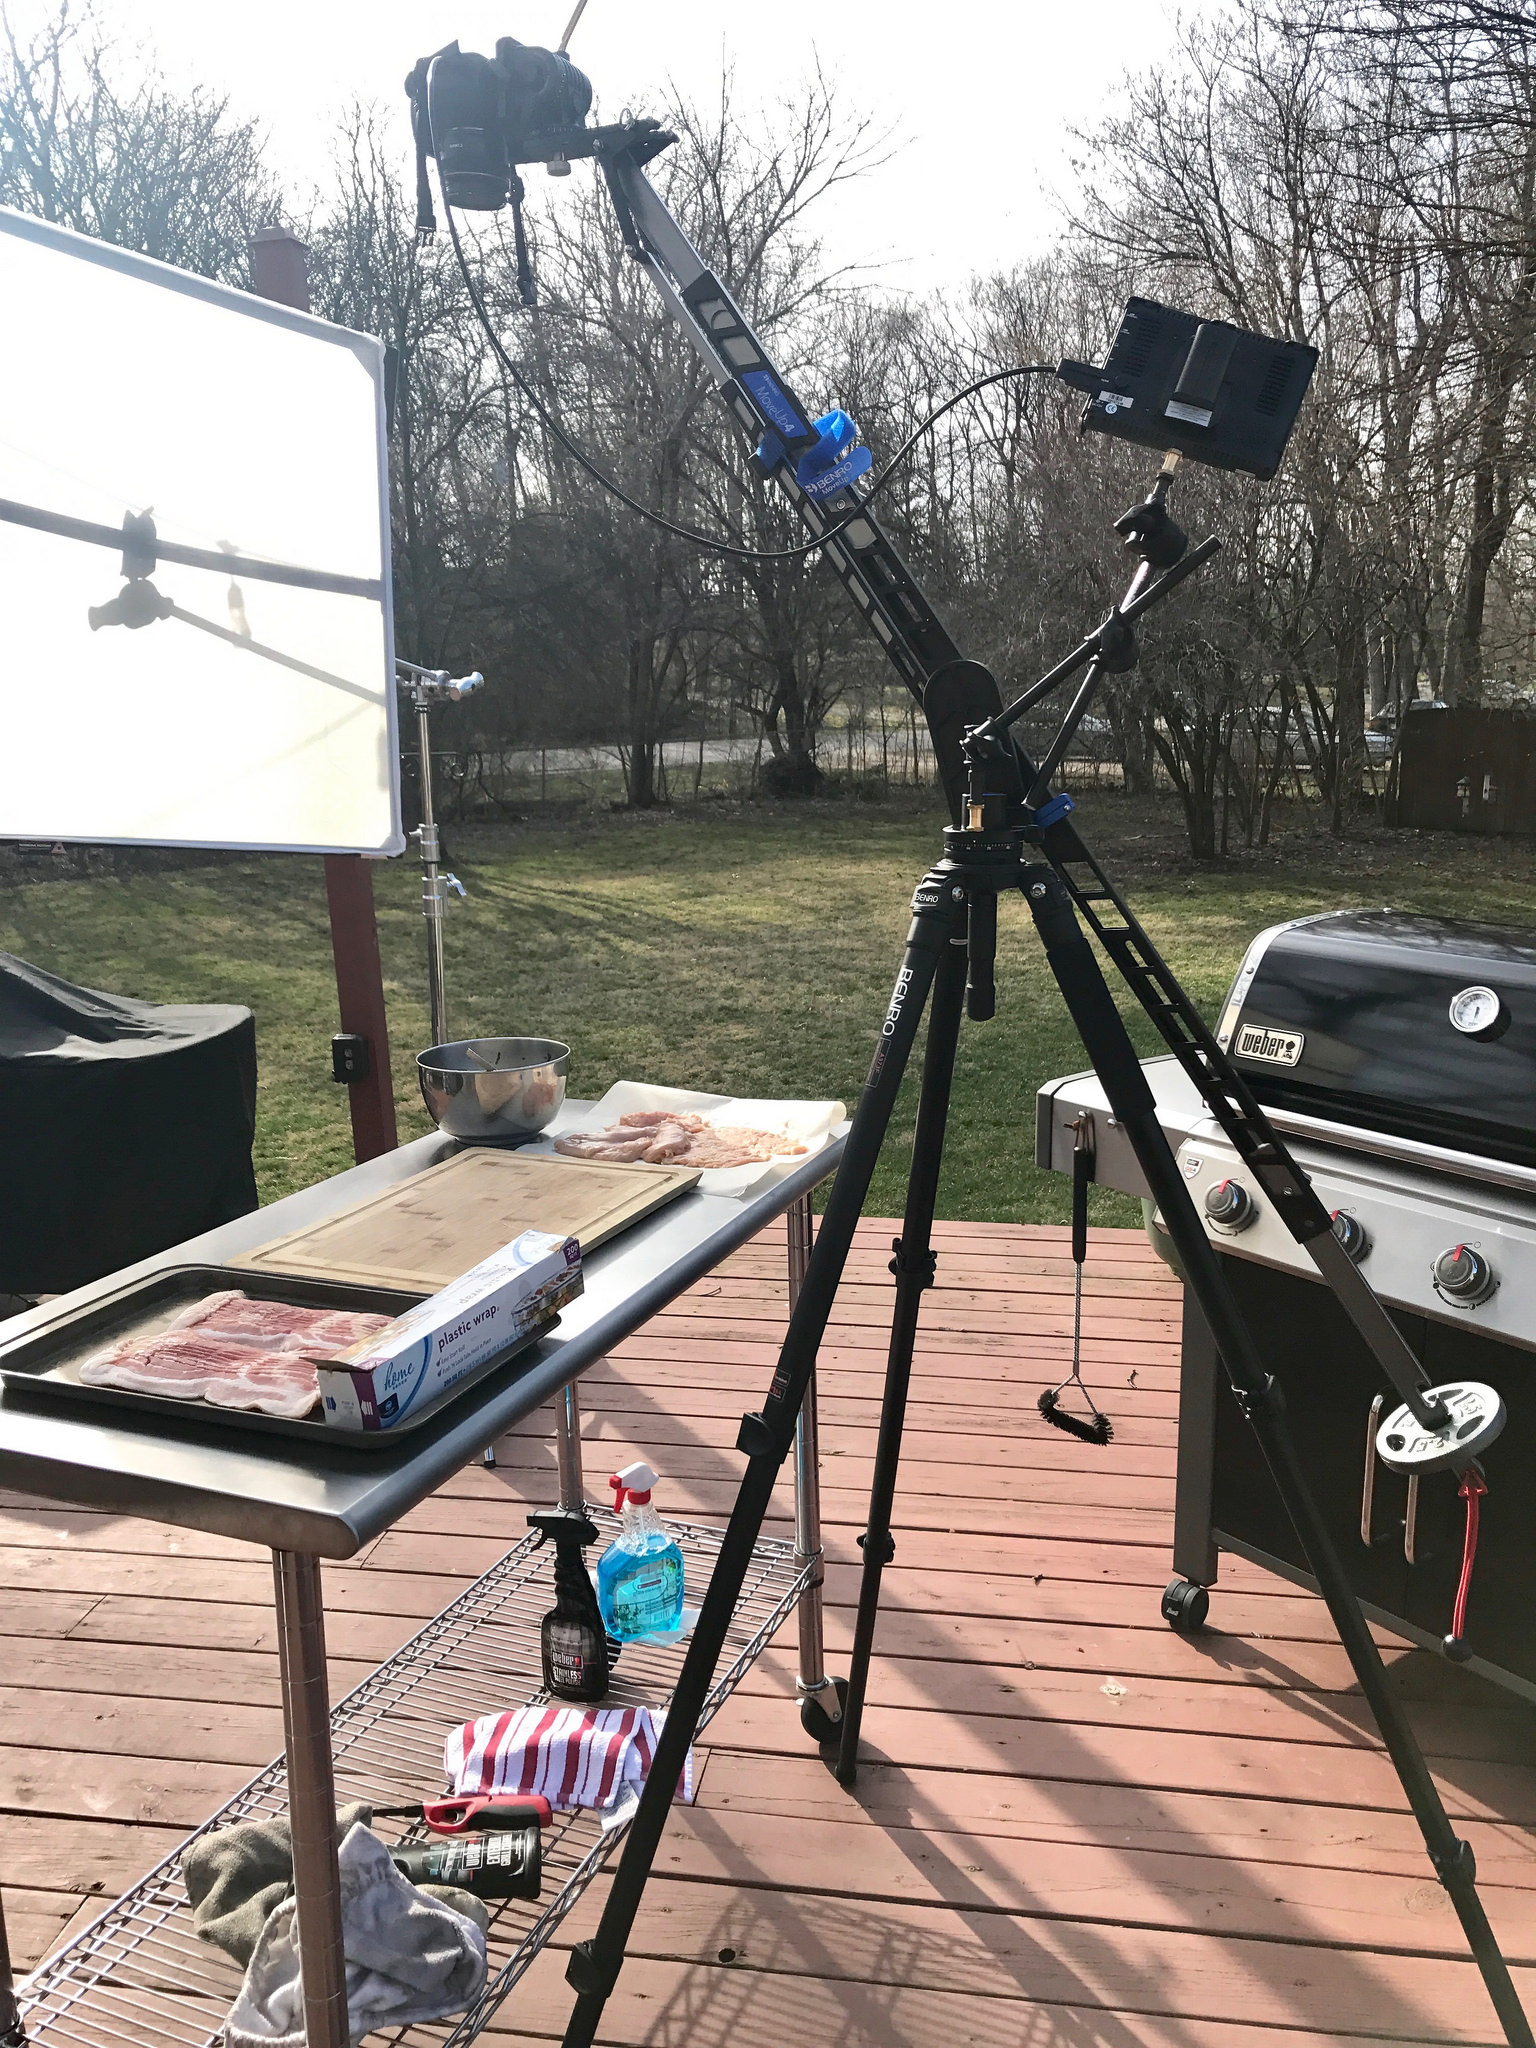 benro travel jib on grilling video shoot.jpg